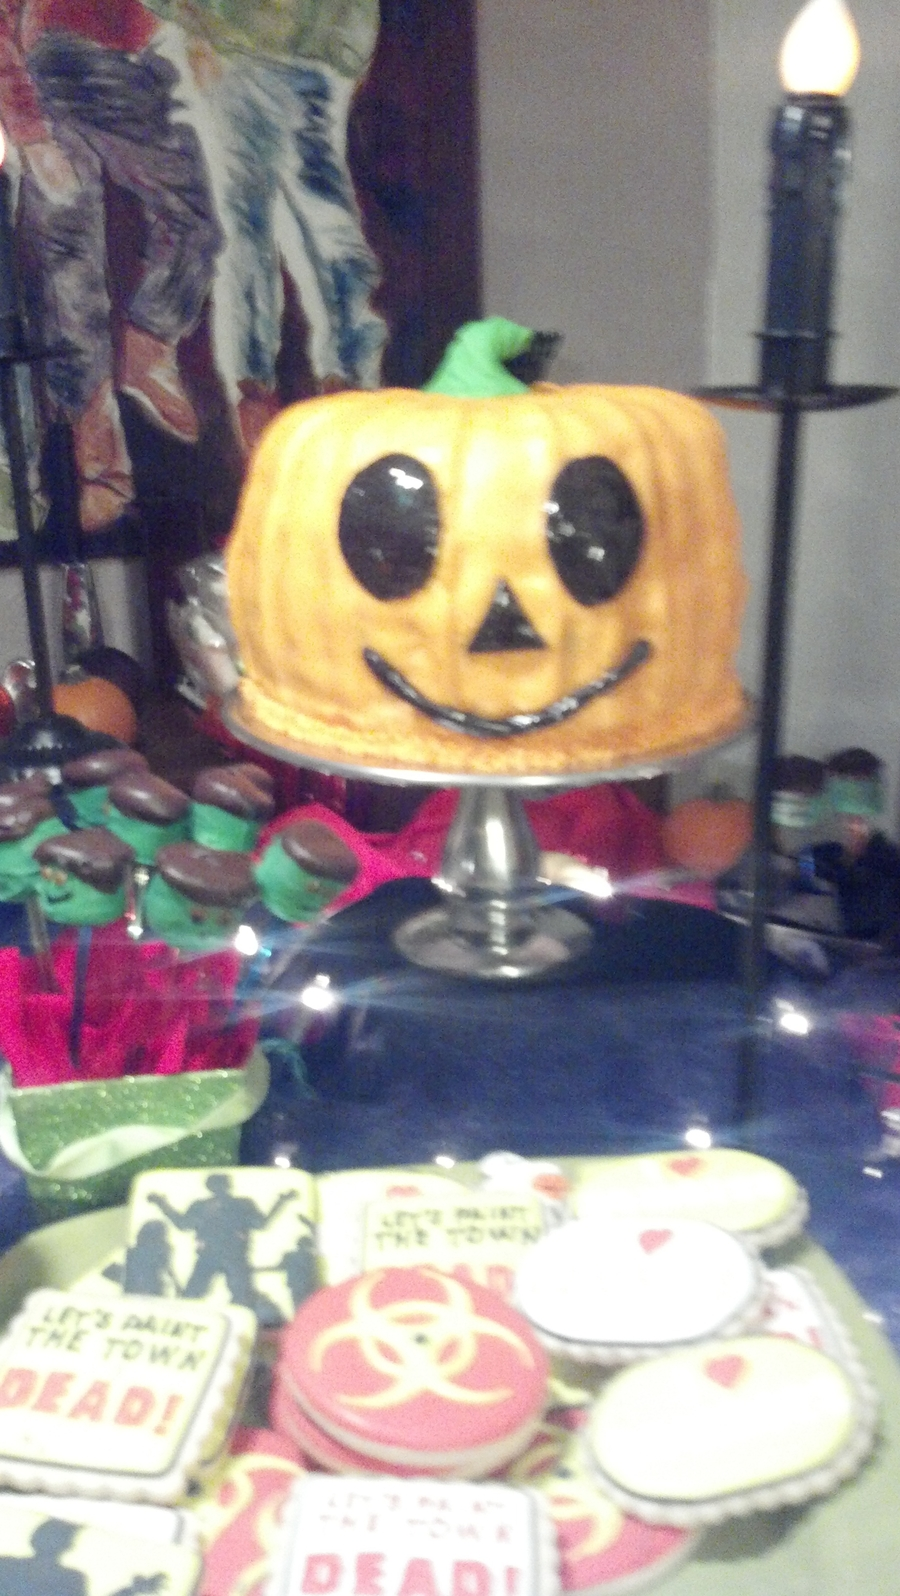 Halloween 2011 on Cake Central